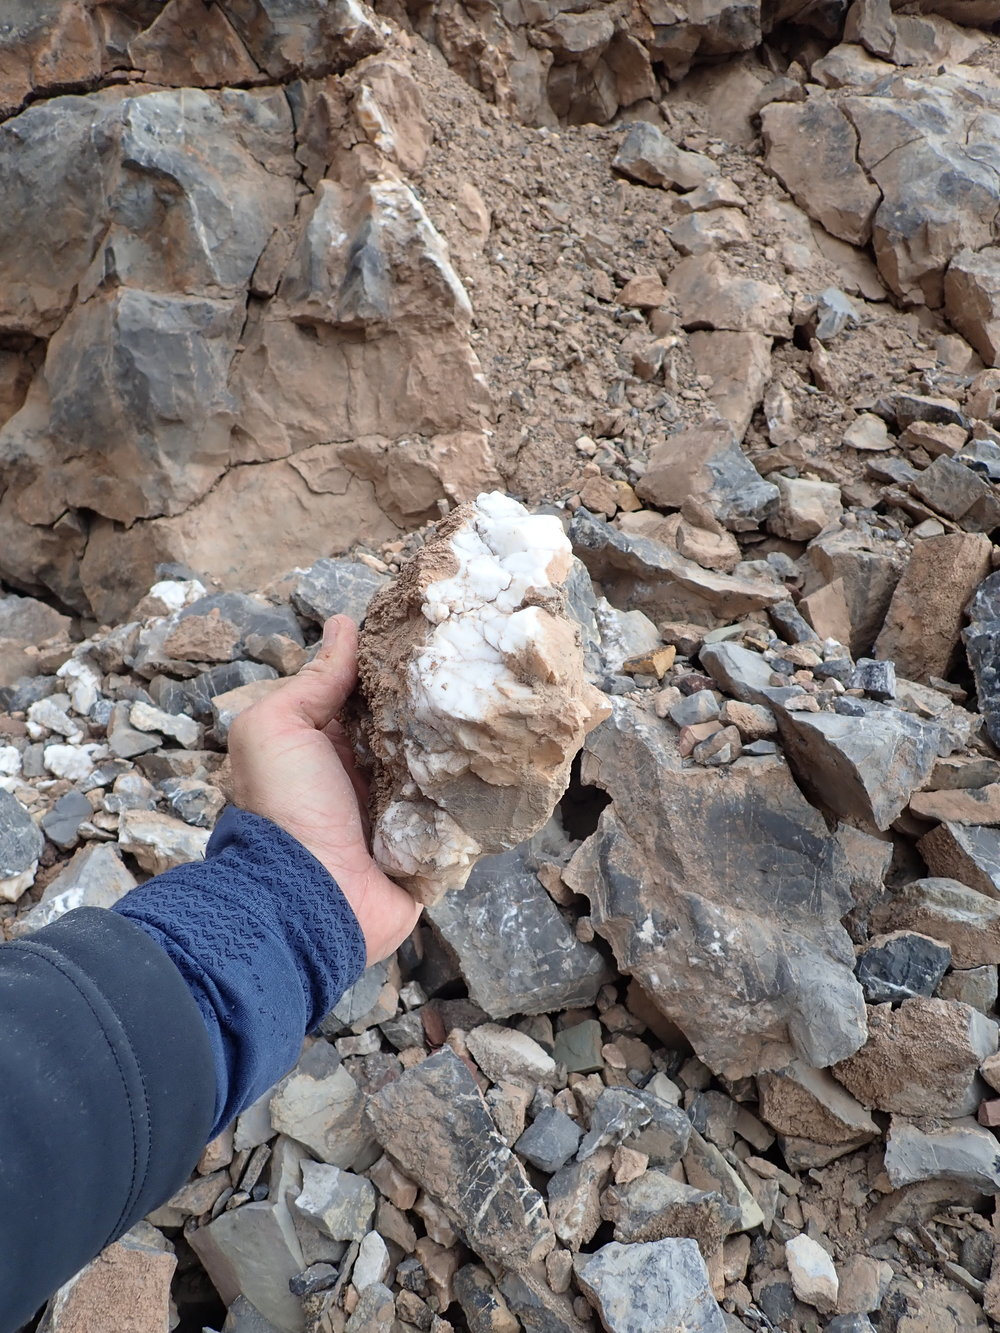 Tungsten-antimony mineralisation at the North Margeries Dal prospect, Ymer Ø.